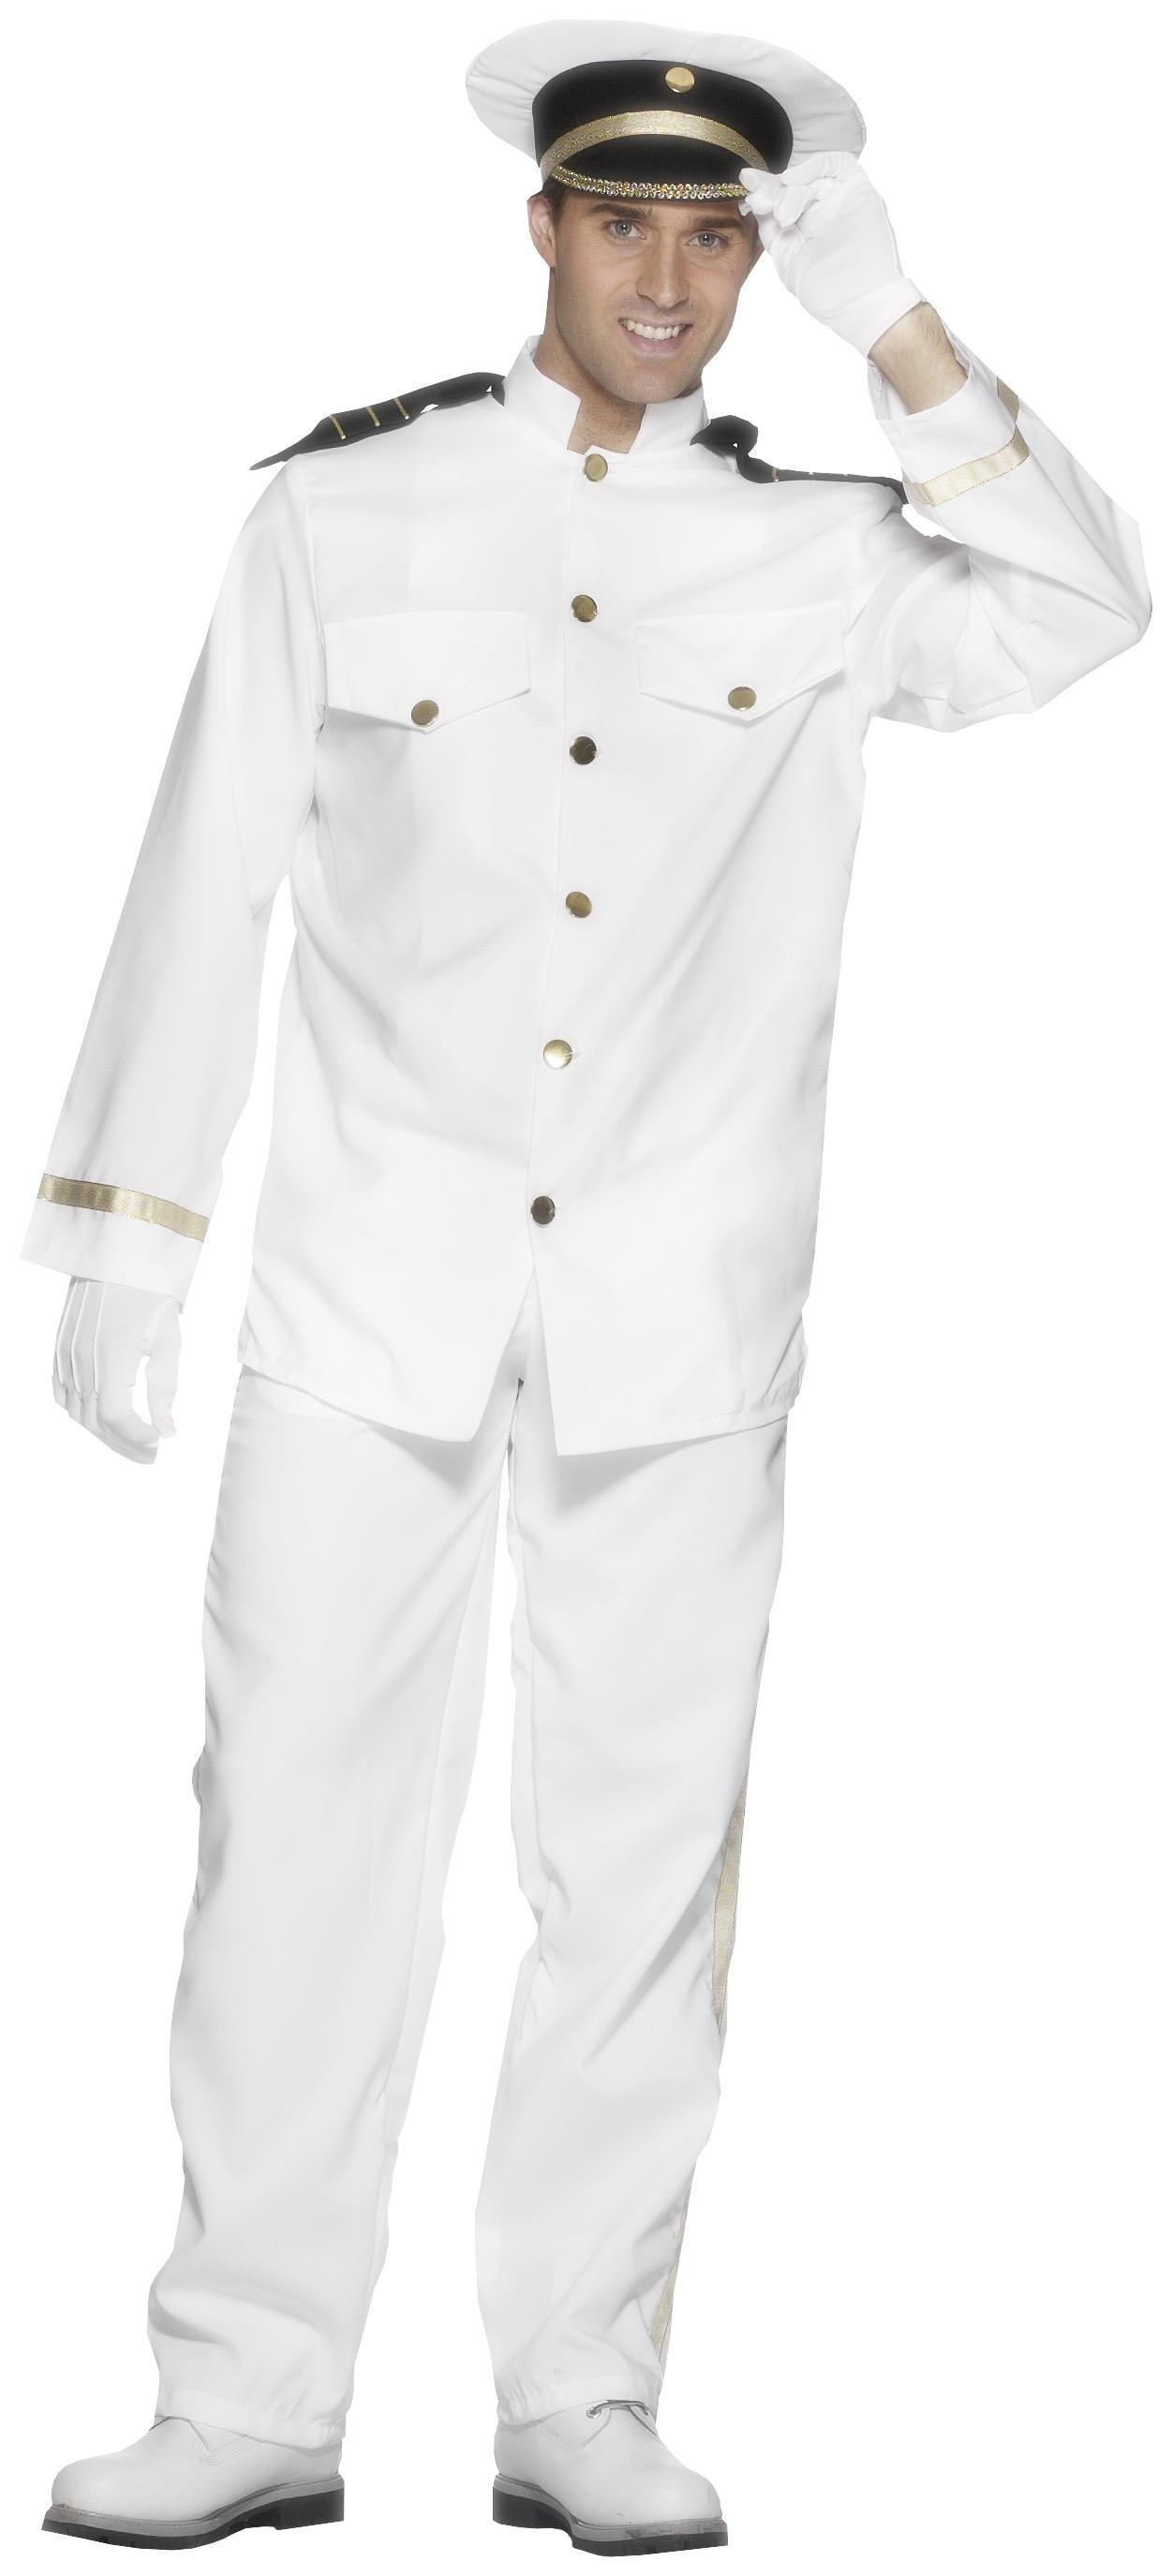 Captain Costume White